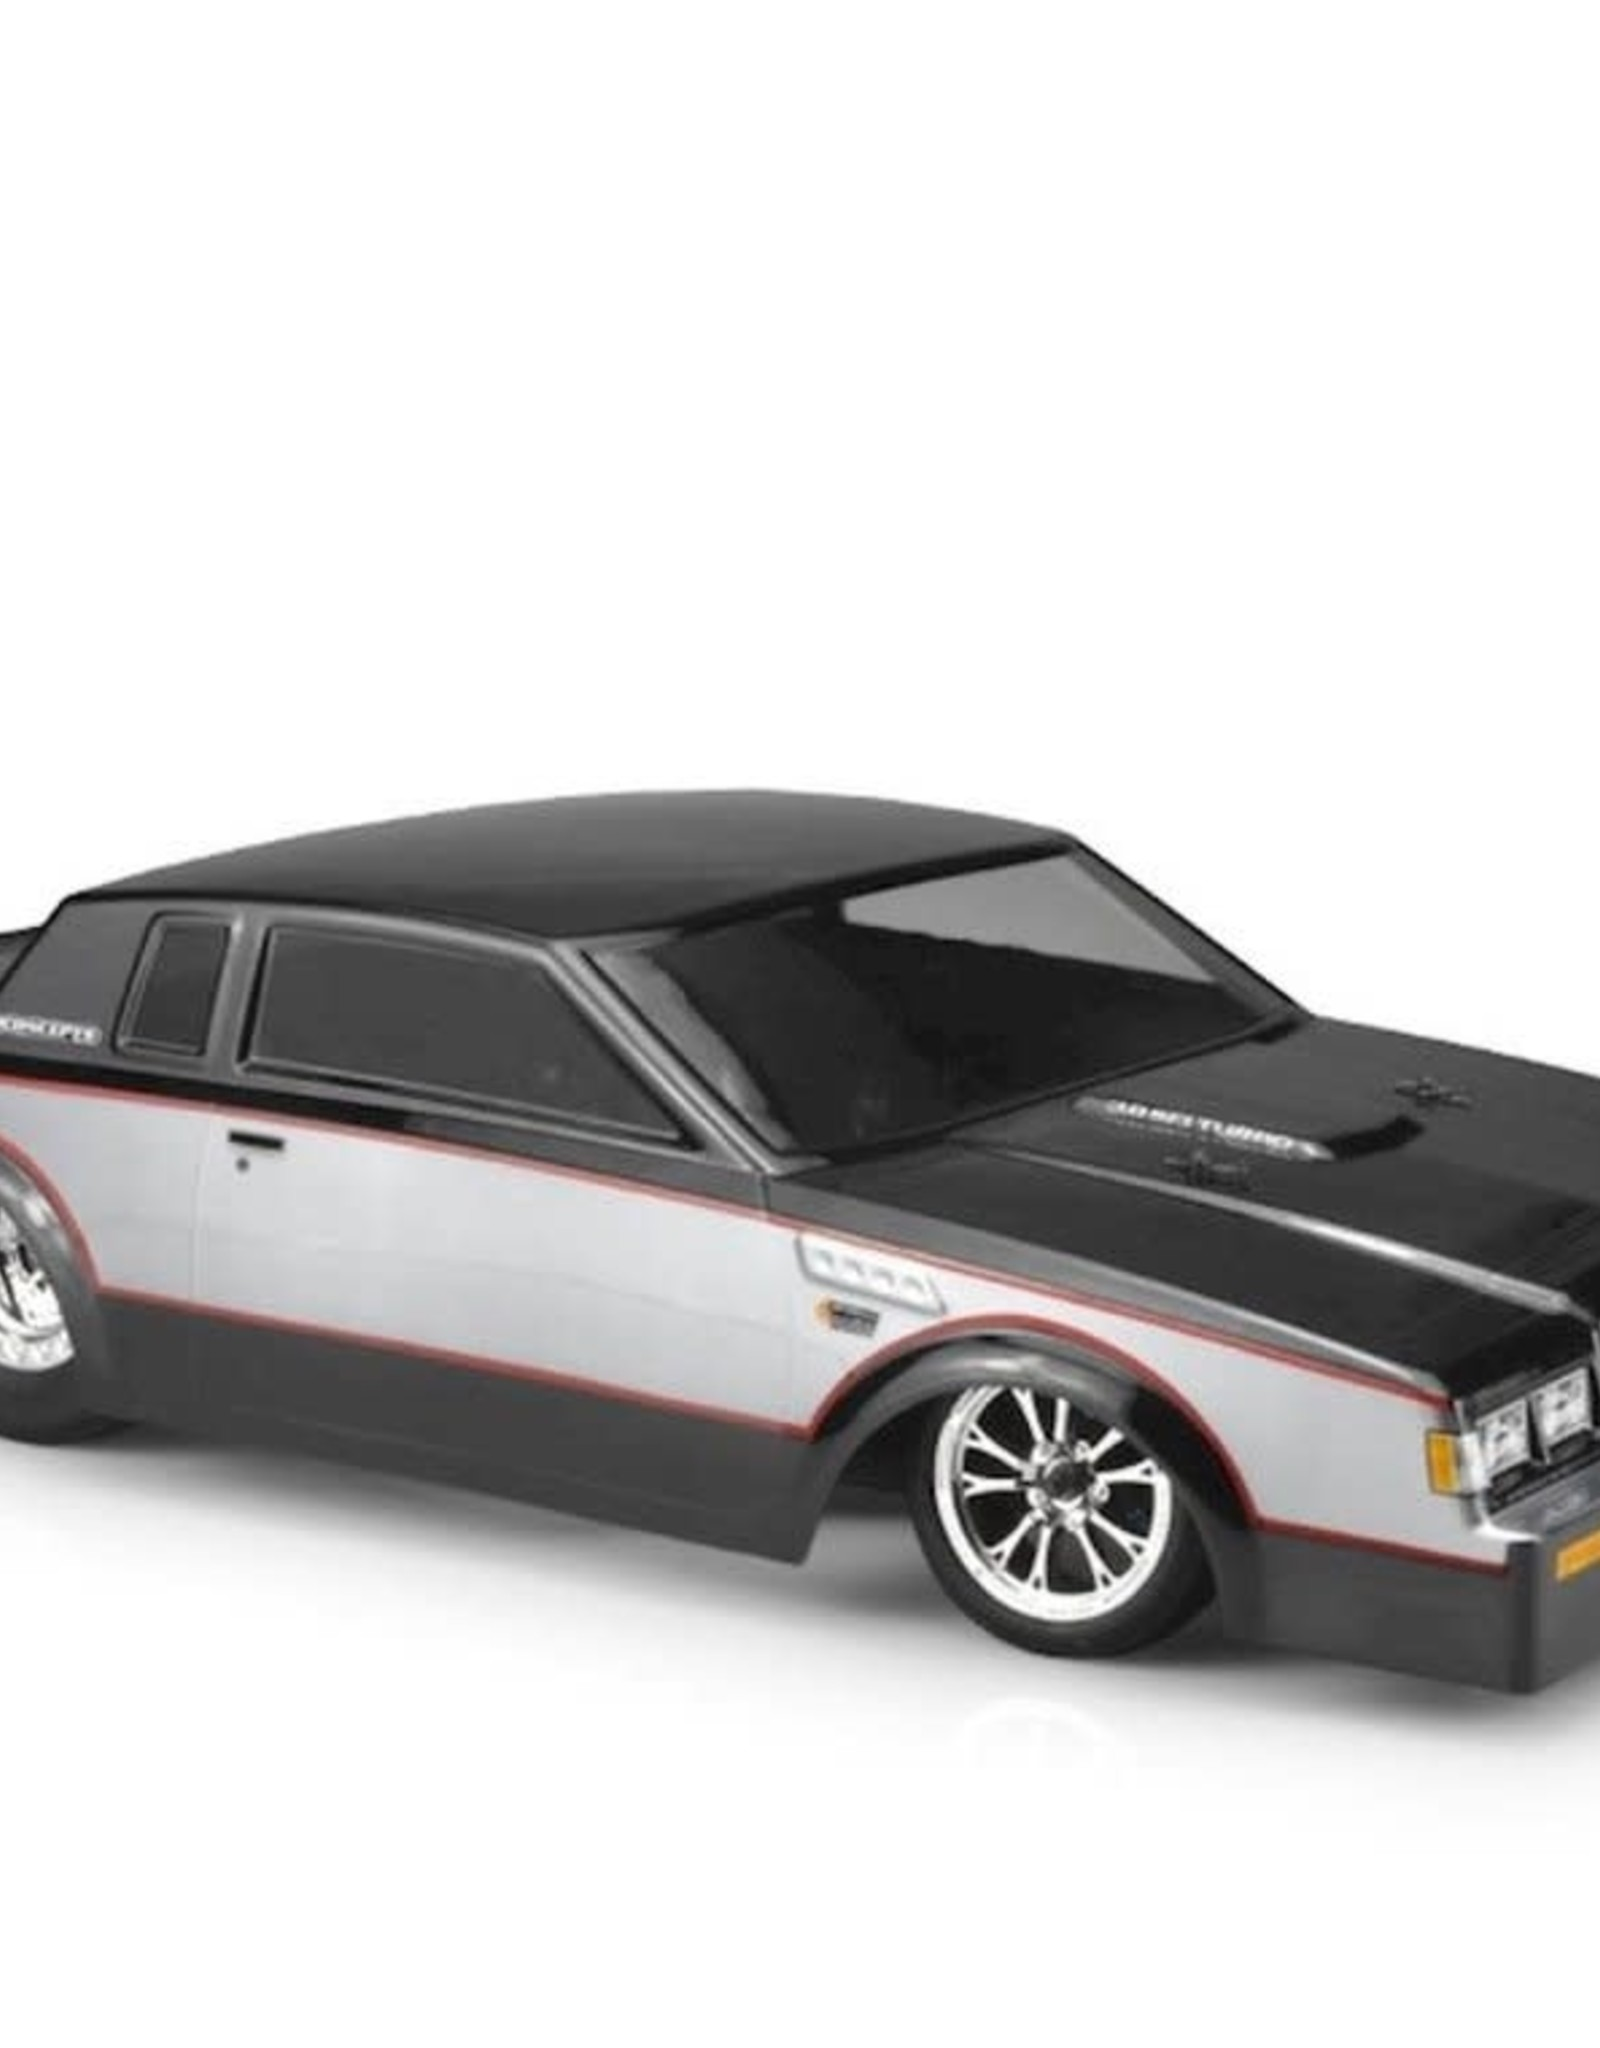 JConcepts Jconcepts 1987 Buick Grand National Street Eliminator Drag Racing Body (Clear)